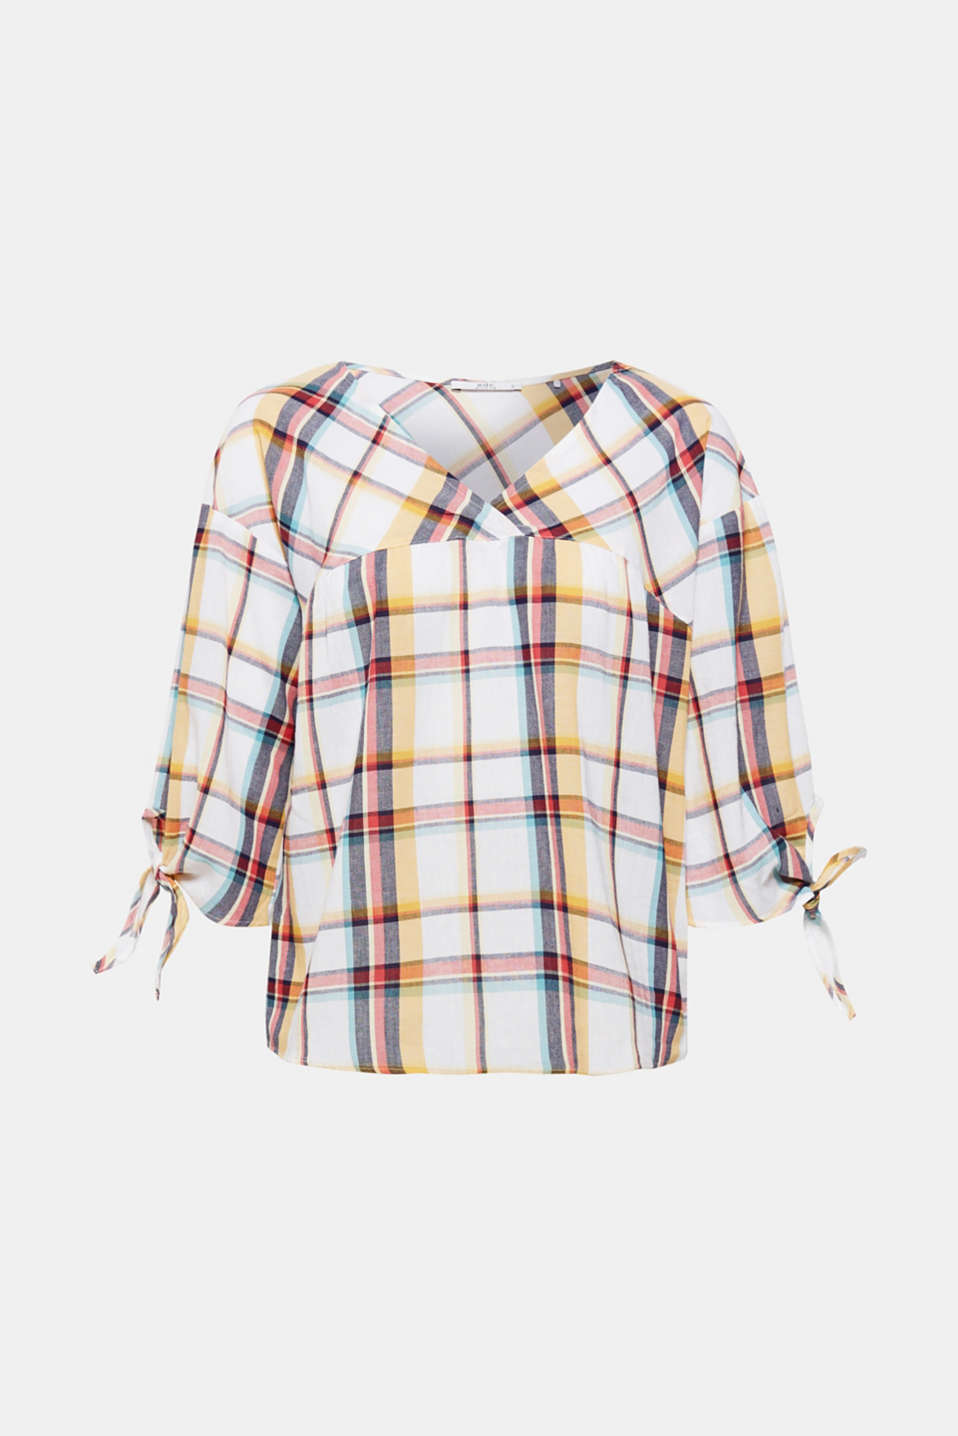 Sporty checks meet playful bow - this gives this flowing V-neck blouse its trendy new look!